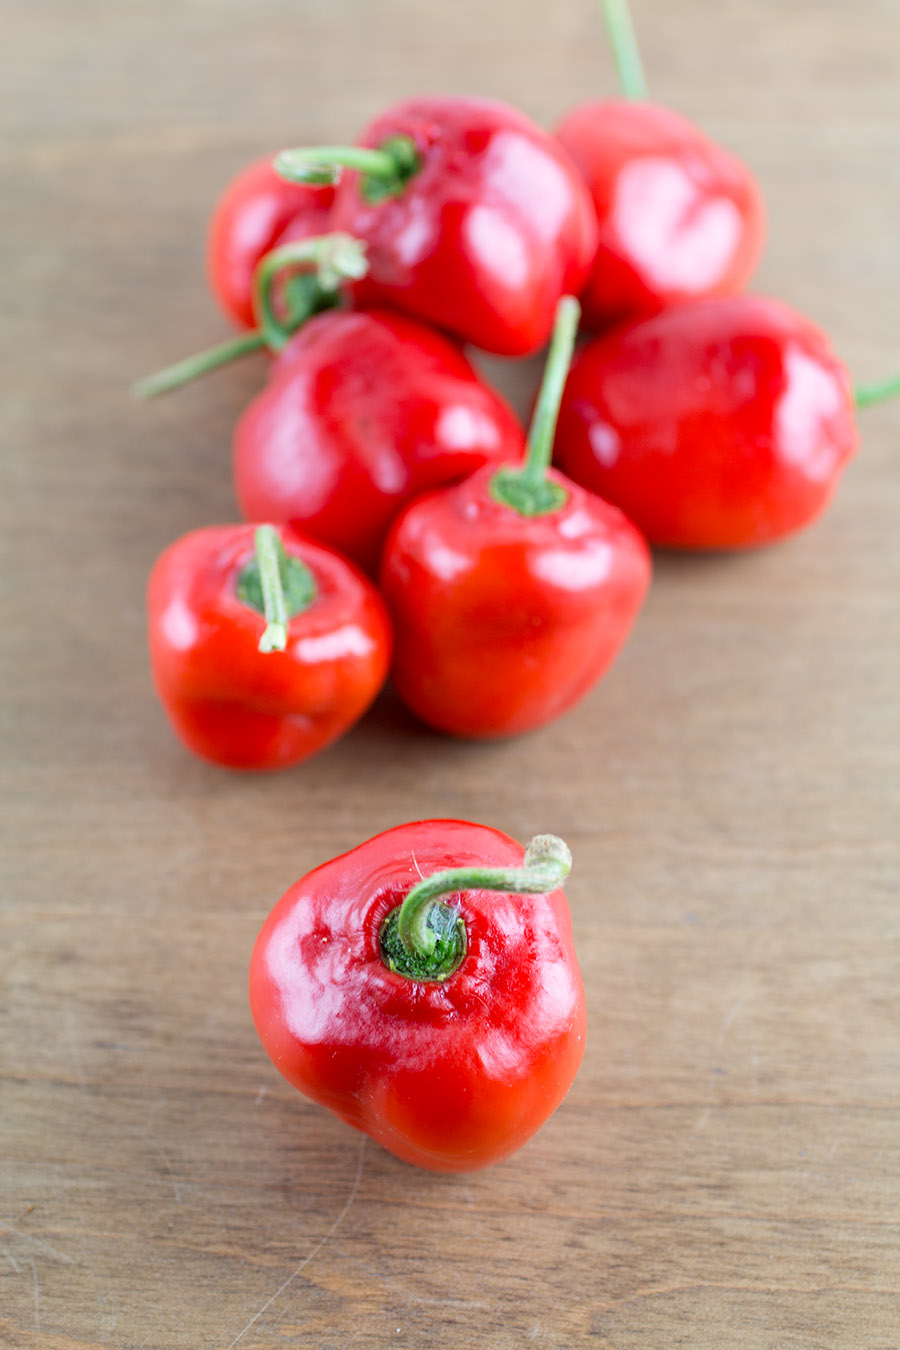 Rocoto Chili Peppers